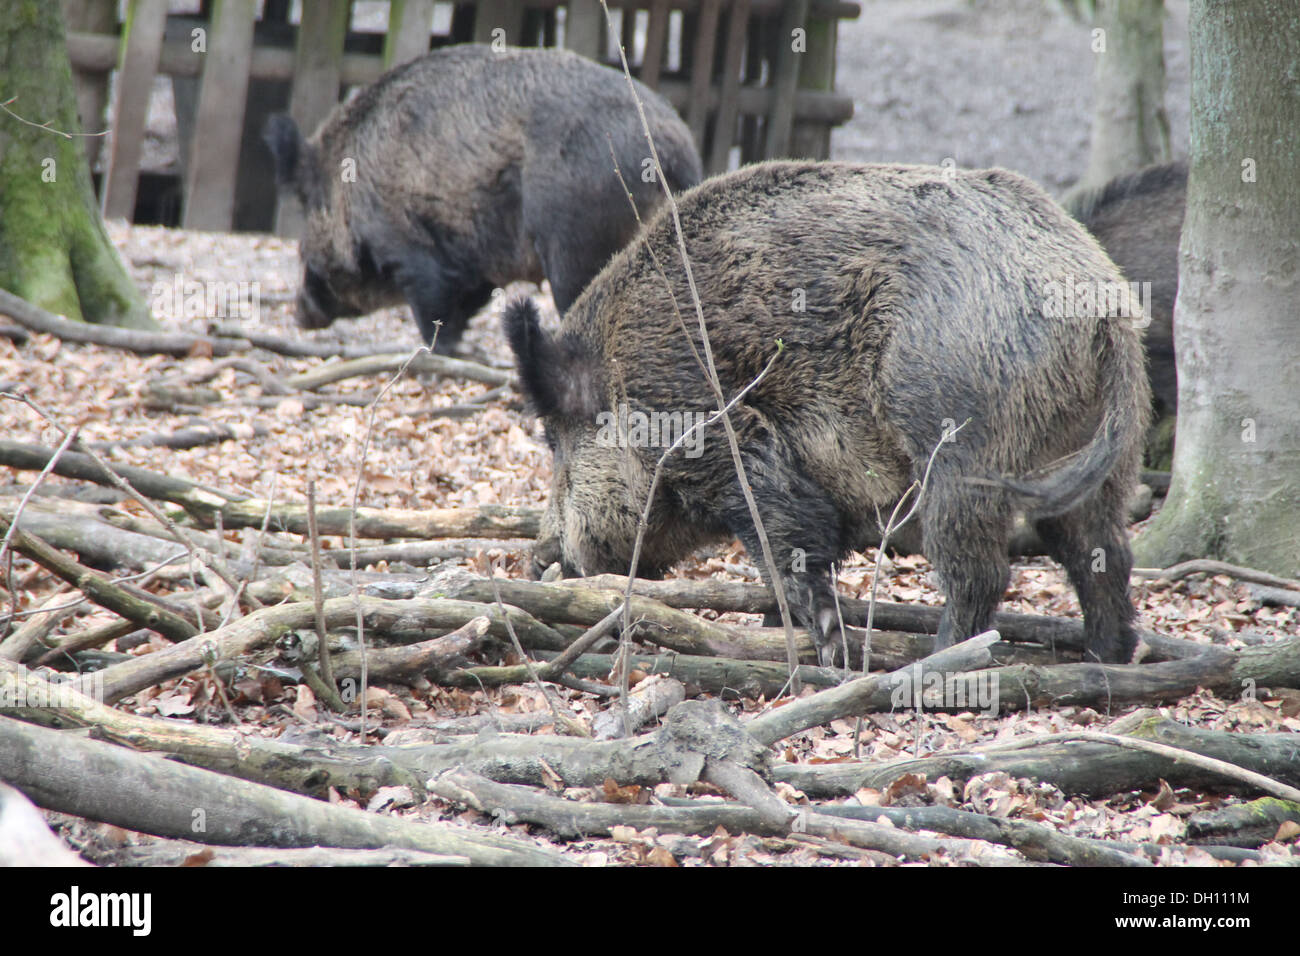 Searching wild boars - Stock Image